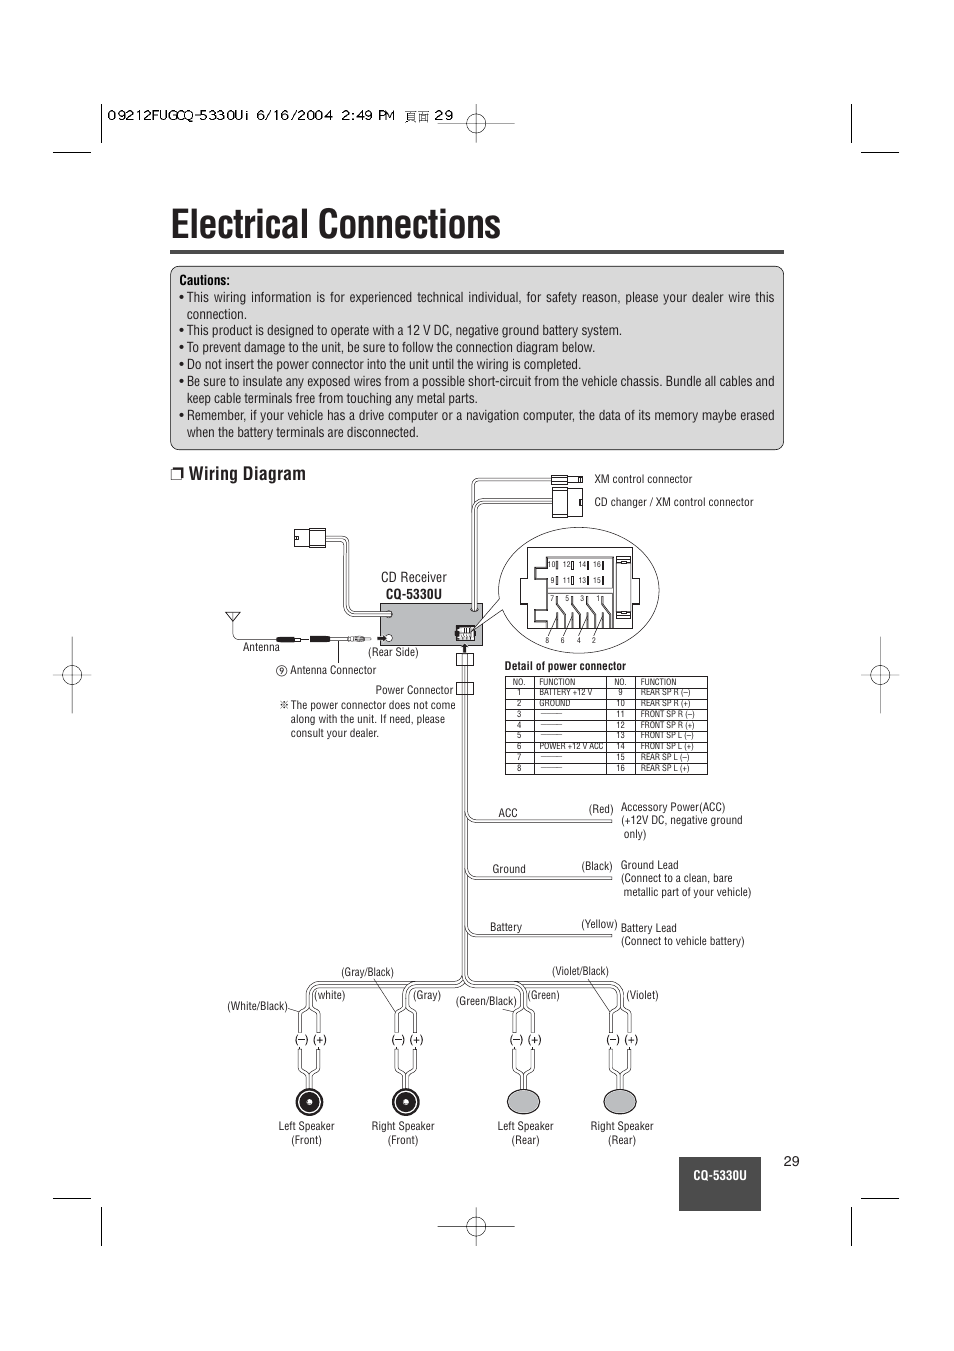 Electrical Connections Wiring Diagram Panasonic Cq 5330u User Manual Page 29